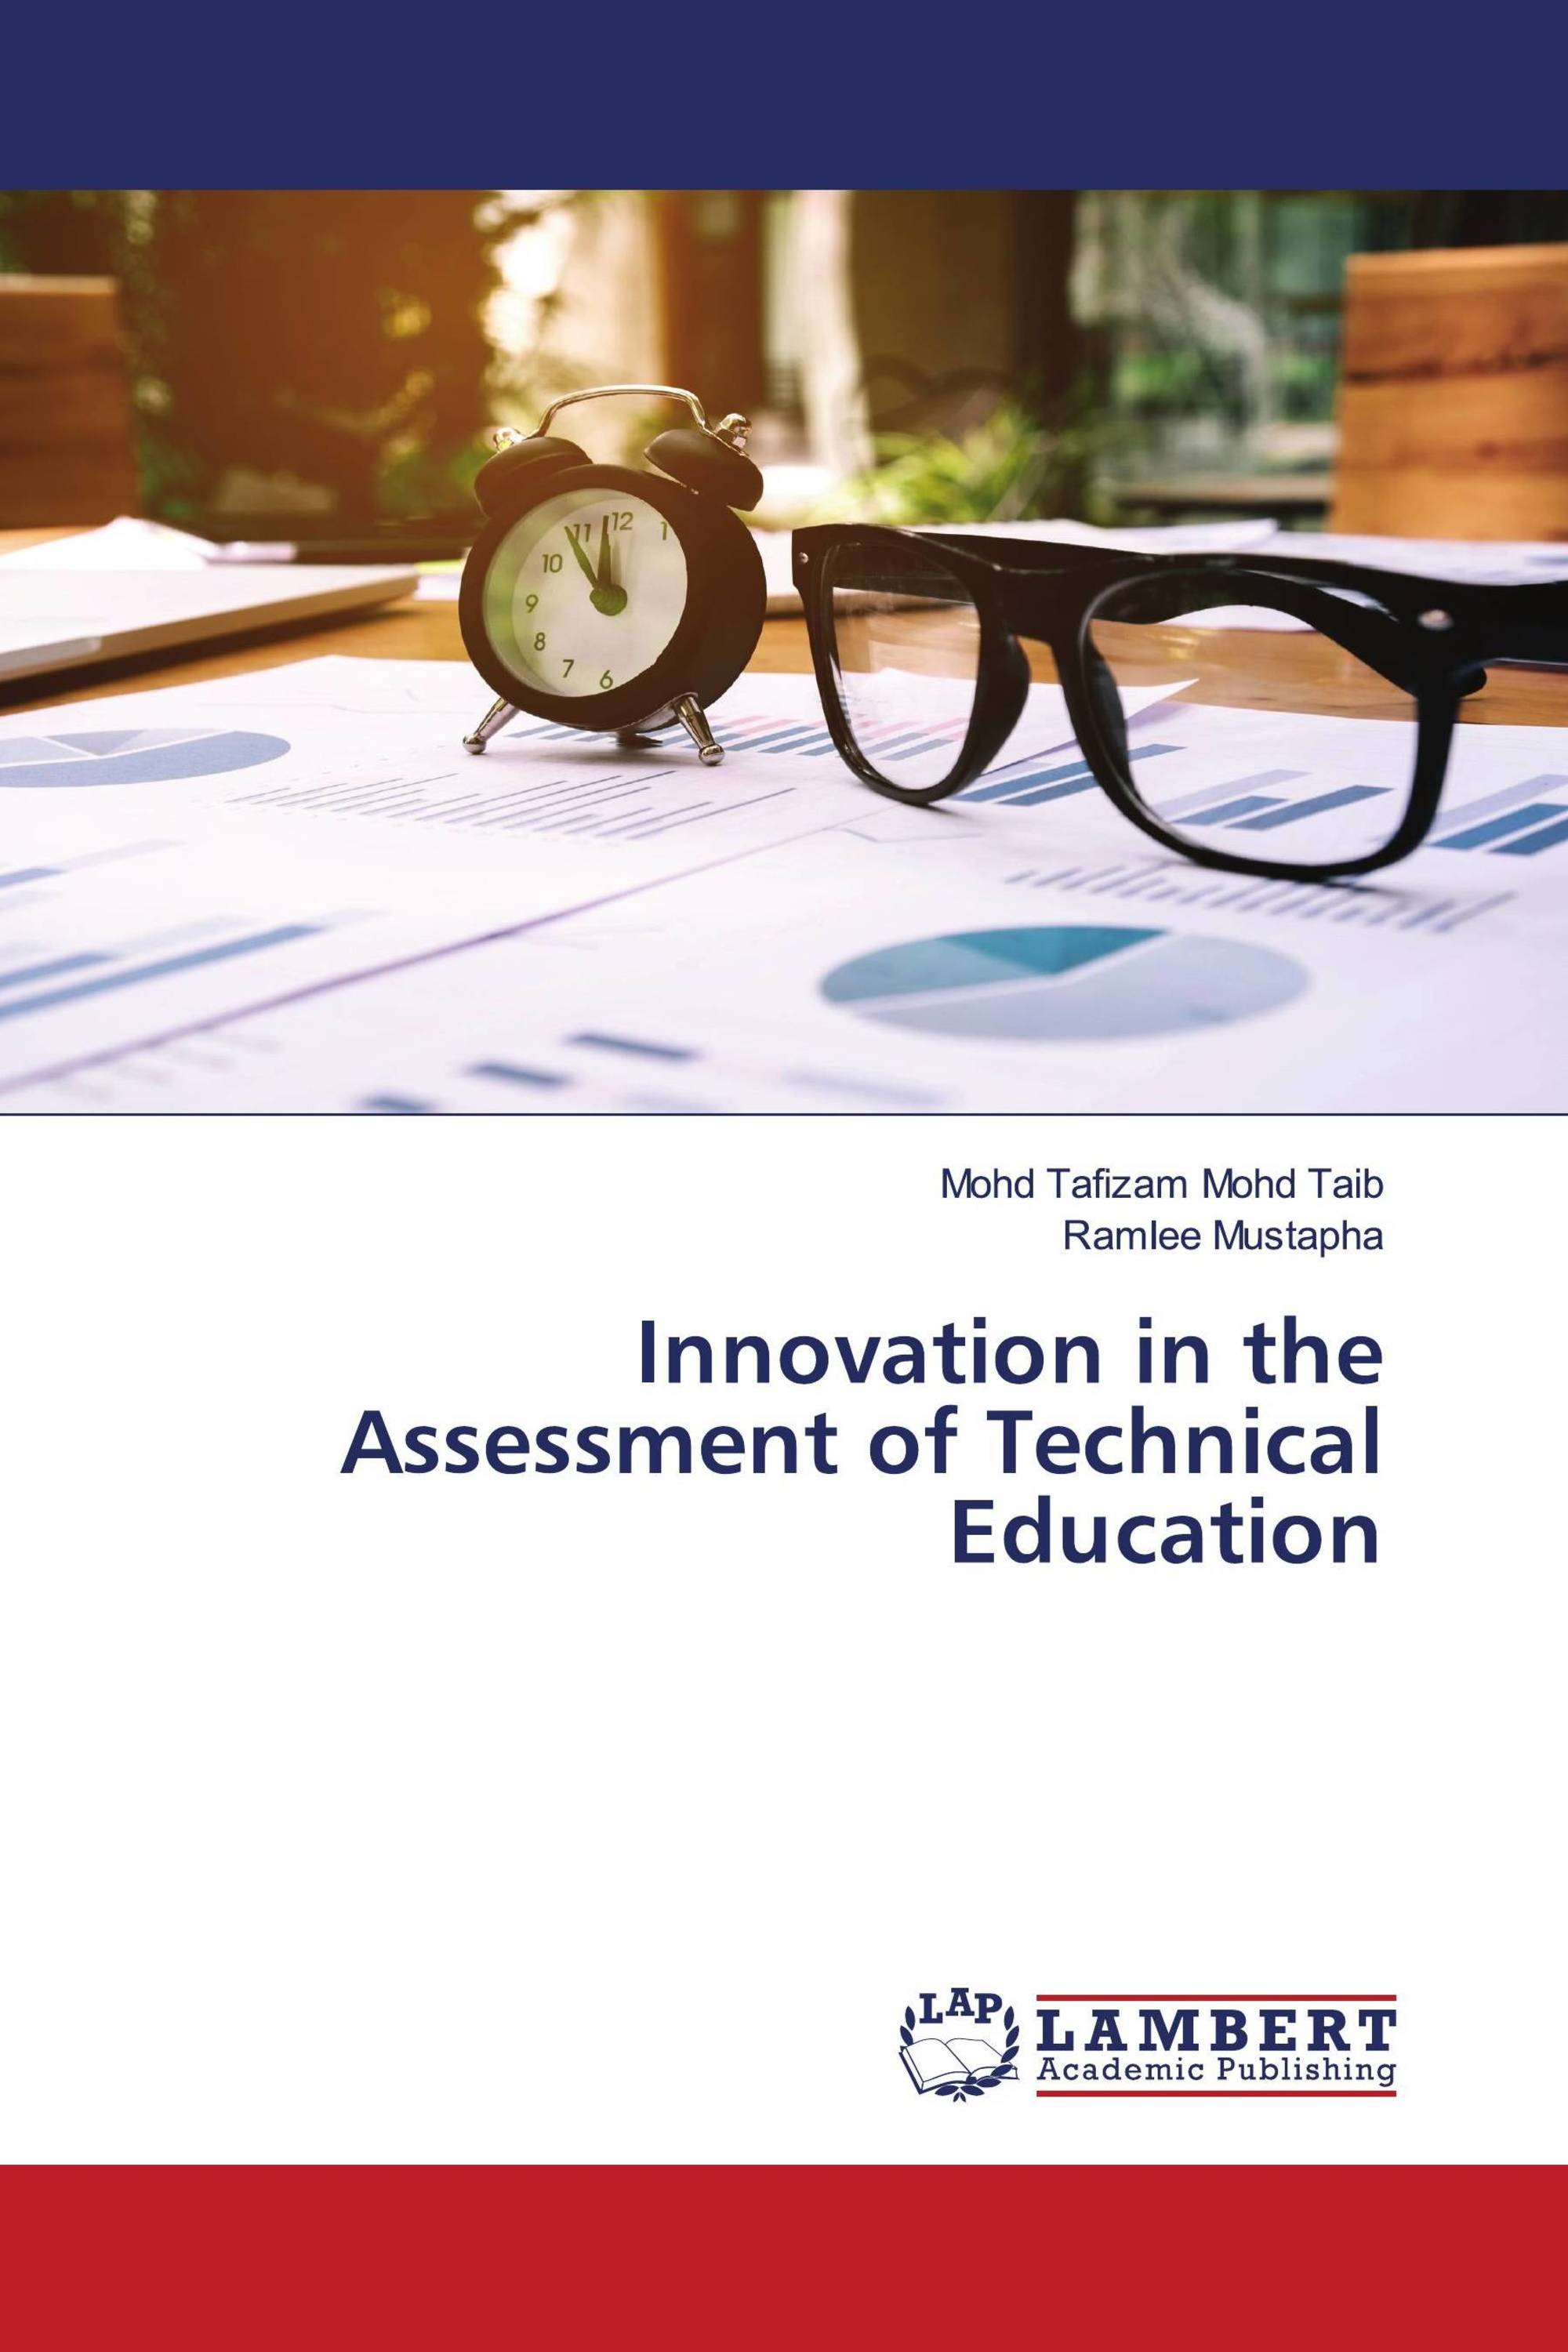 Innovation in the Assessment of Technical Education